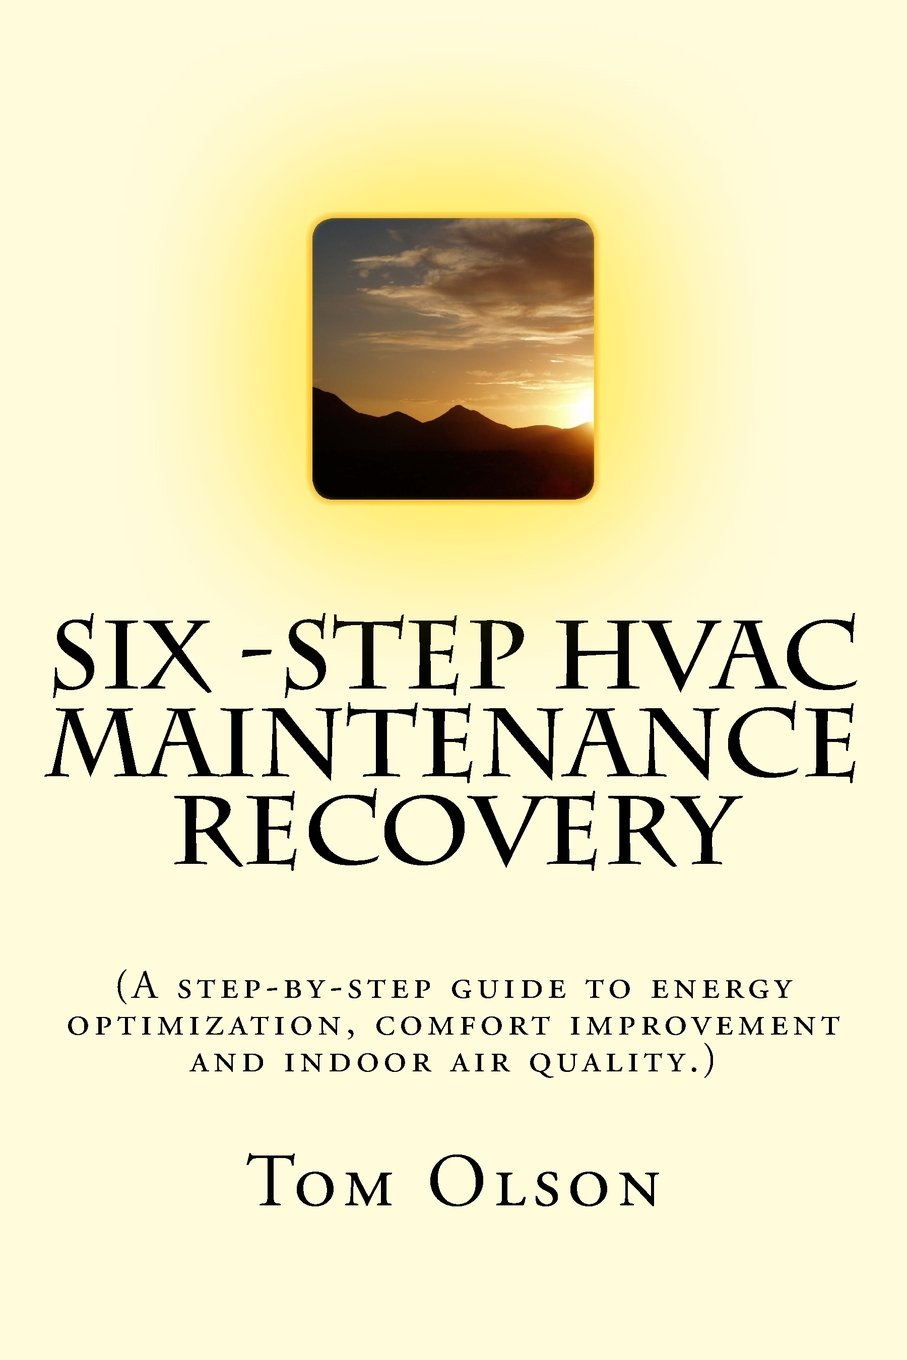 Six-Step HVAC Maintenance Recovery: (A step-by-step guide to energy optimization, comfort improvement and indoor air quality.)